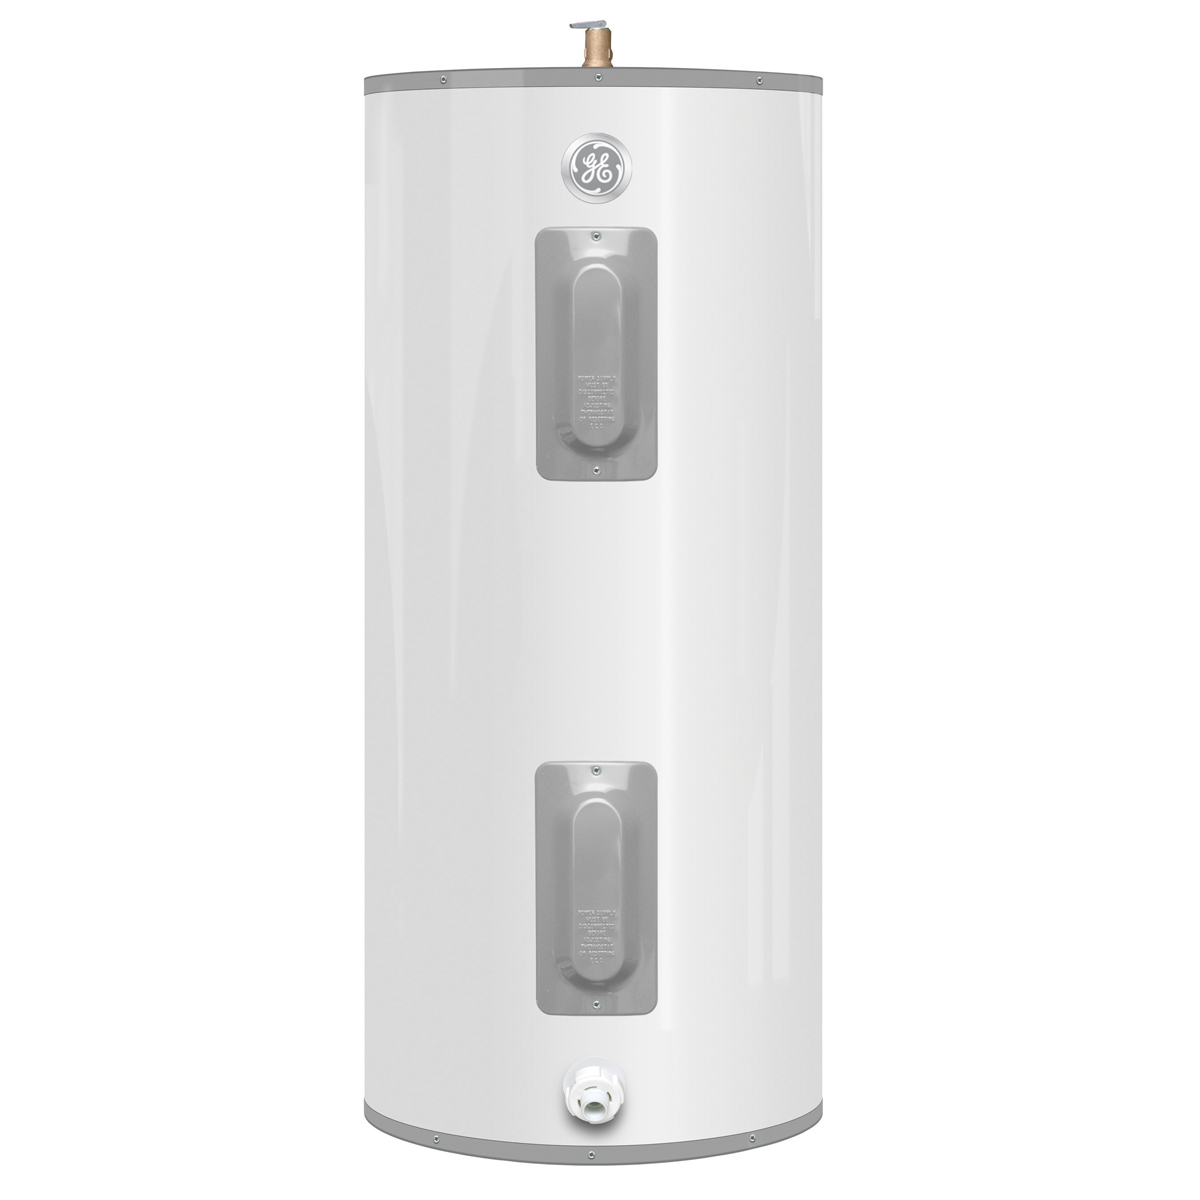 Ge 174 Electric Water Heater Ge38s06aag Ge Appliances